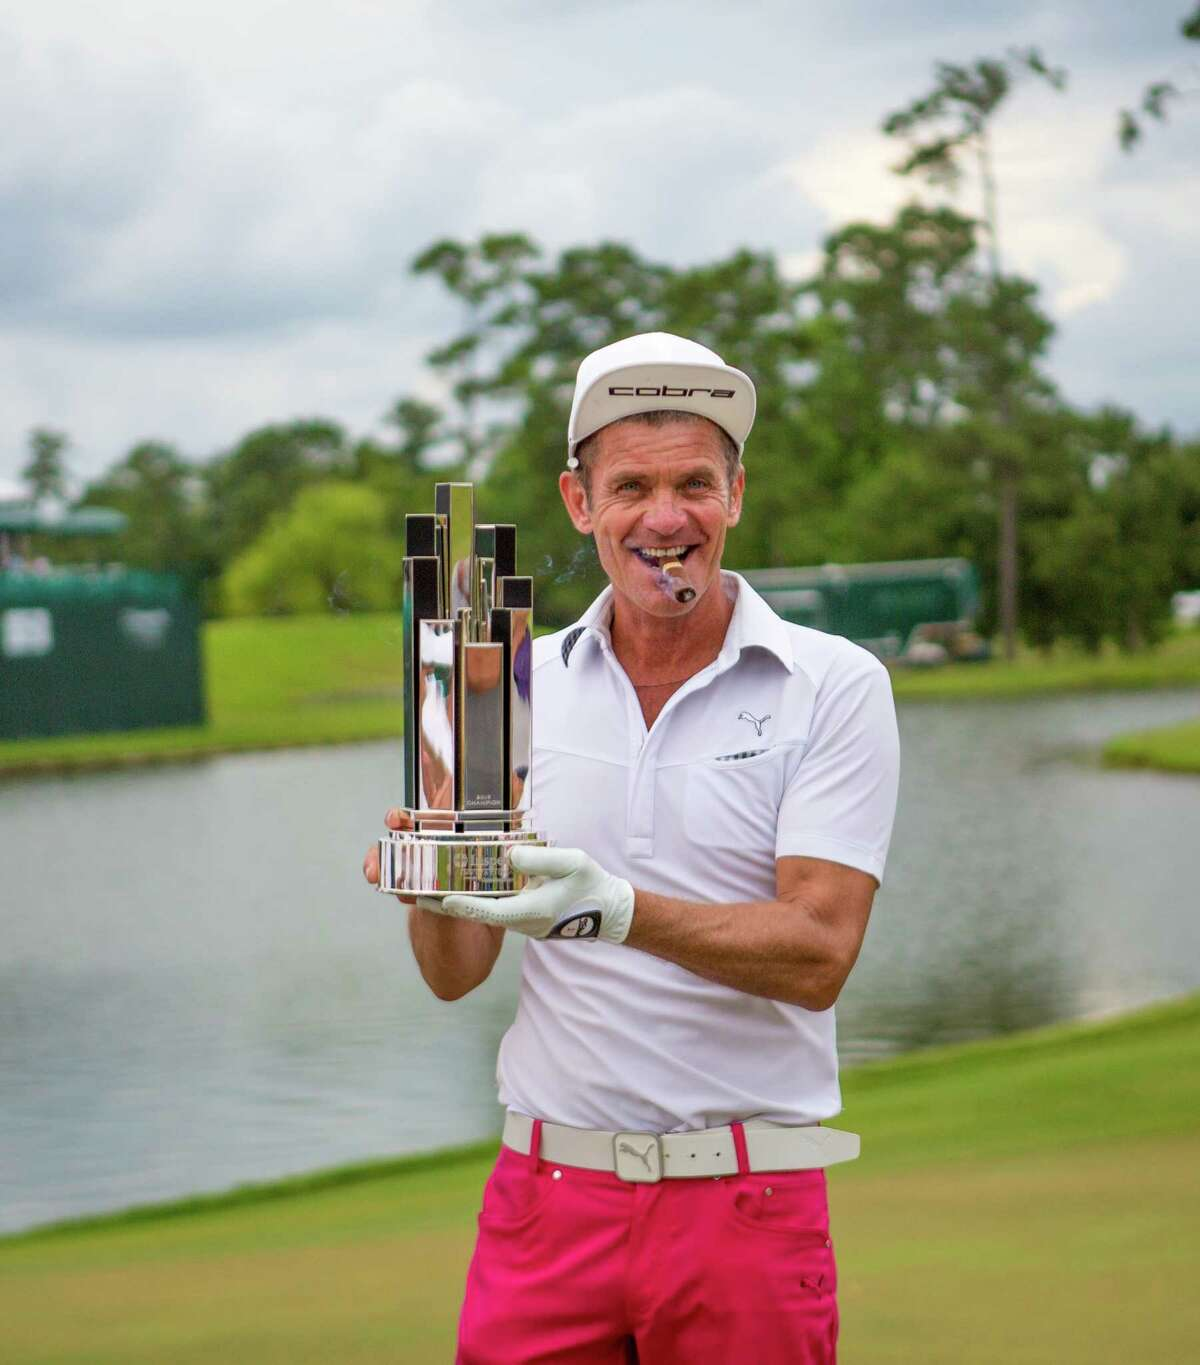 Jesper Parnevik The defending Insperity champion was the only player last year to post three rounds in the 60s, good for a 4-shot win and his first on the Champions Tour. His previous win was the 2001 Honda Classic on the PGA Tour. Finished second in the British Open in 1994 and tied for second at the Open in 1997. From 2000-01 he spent 38 weeks in the top 10 of the World Golf Rankings.